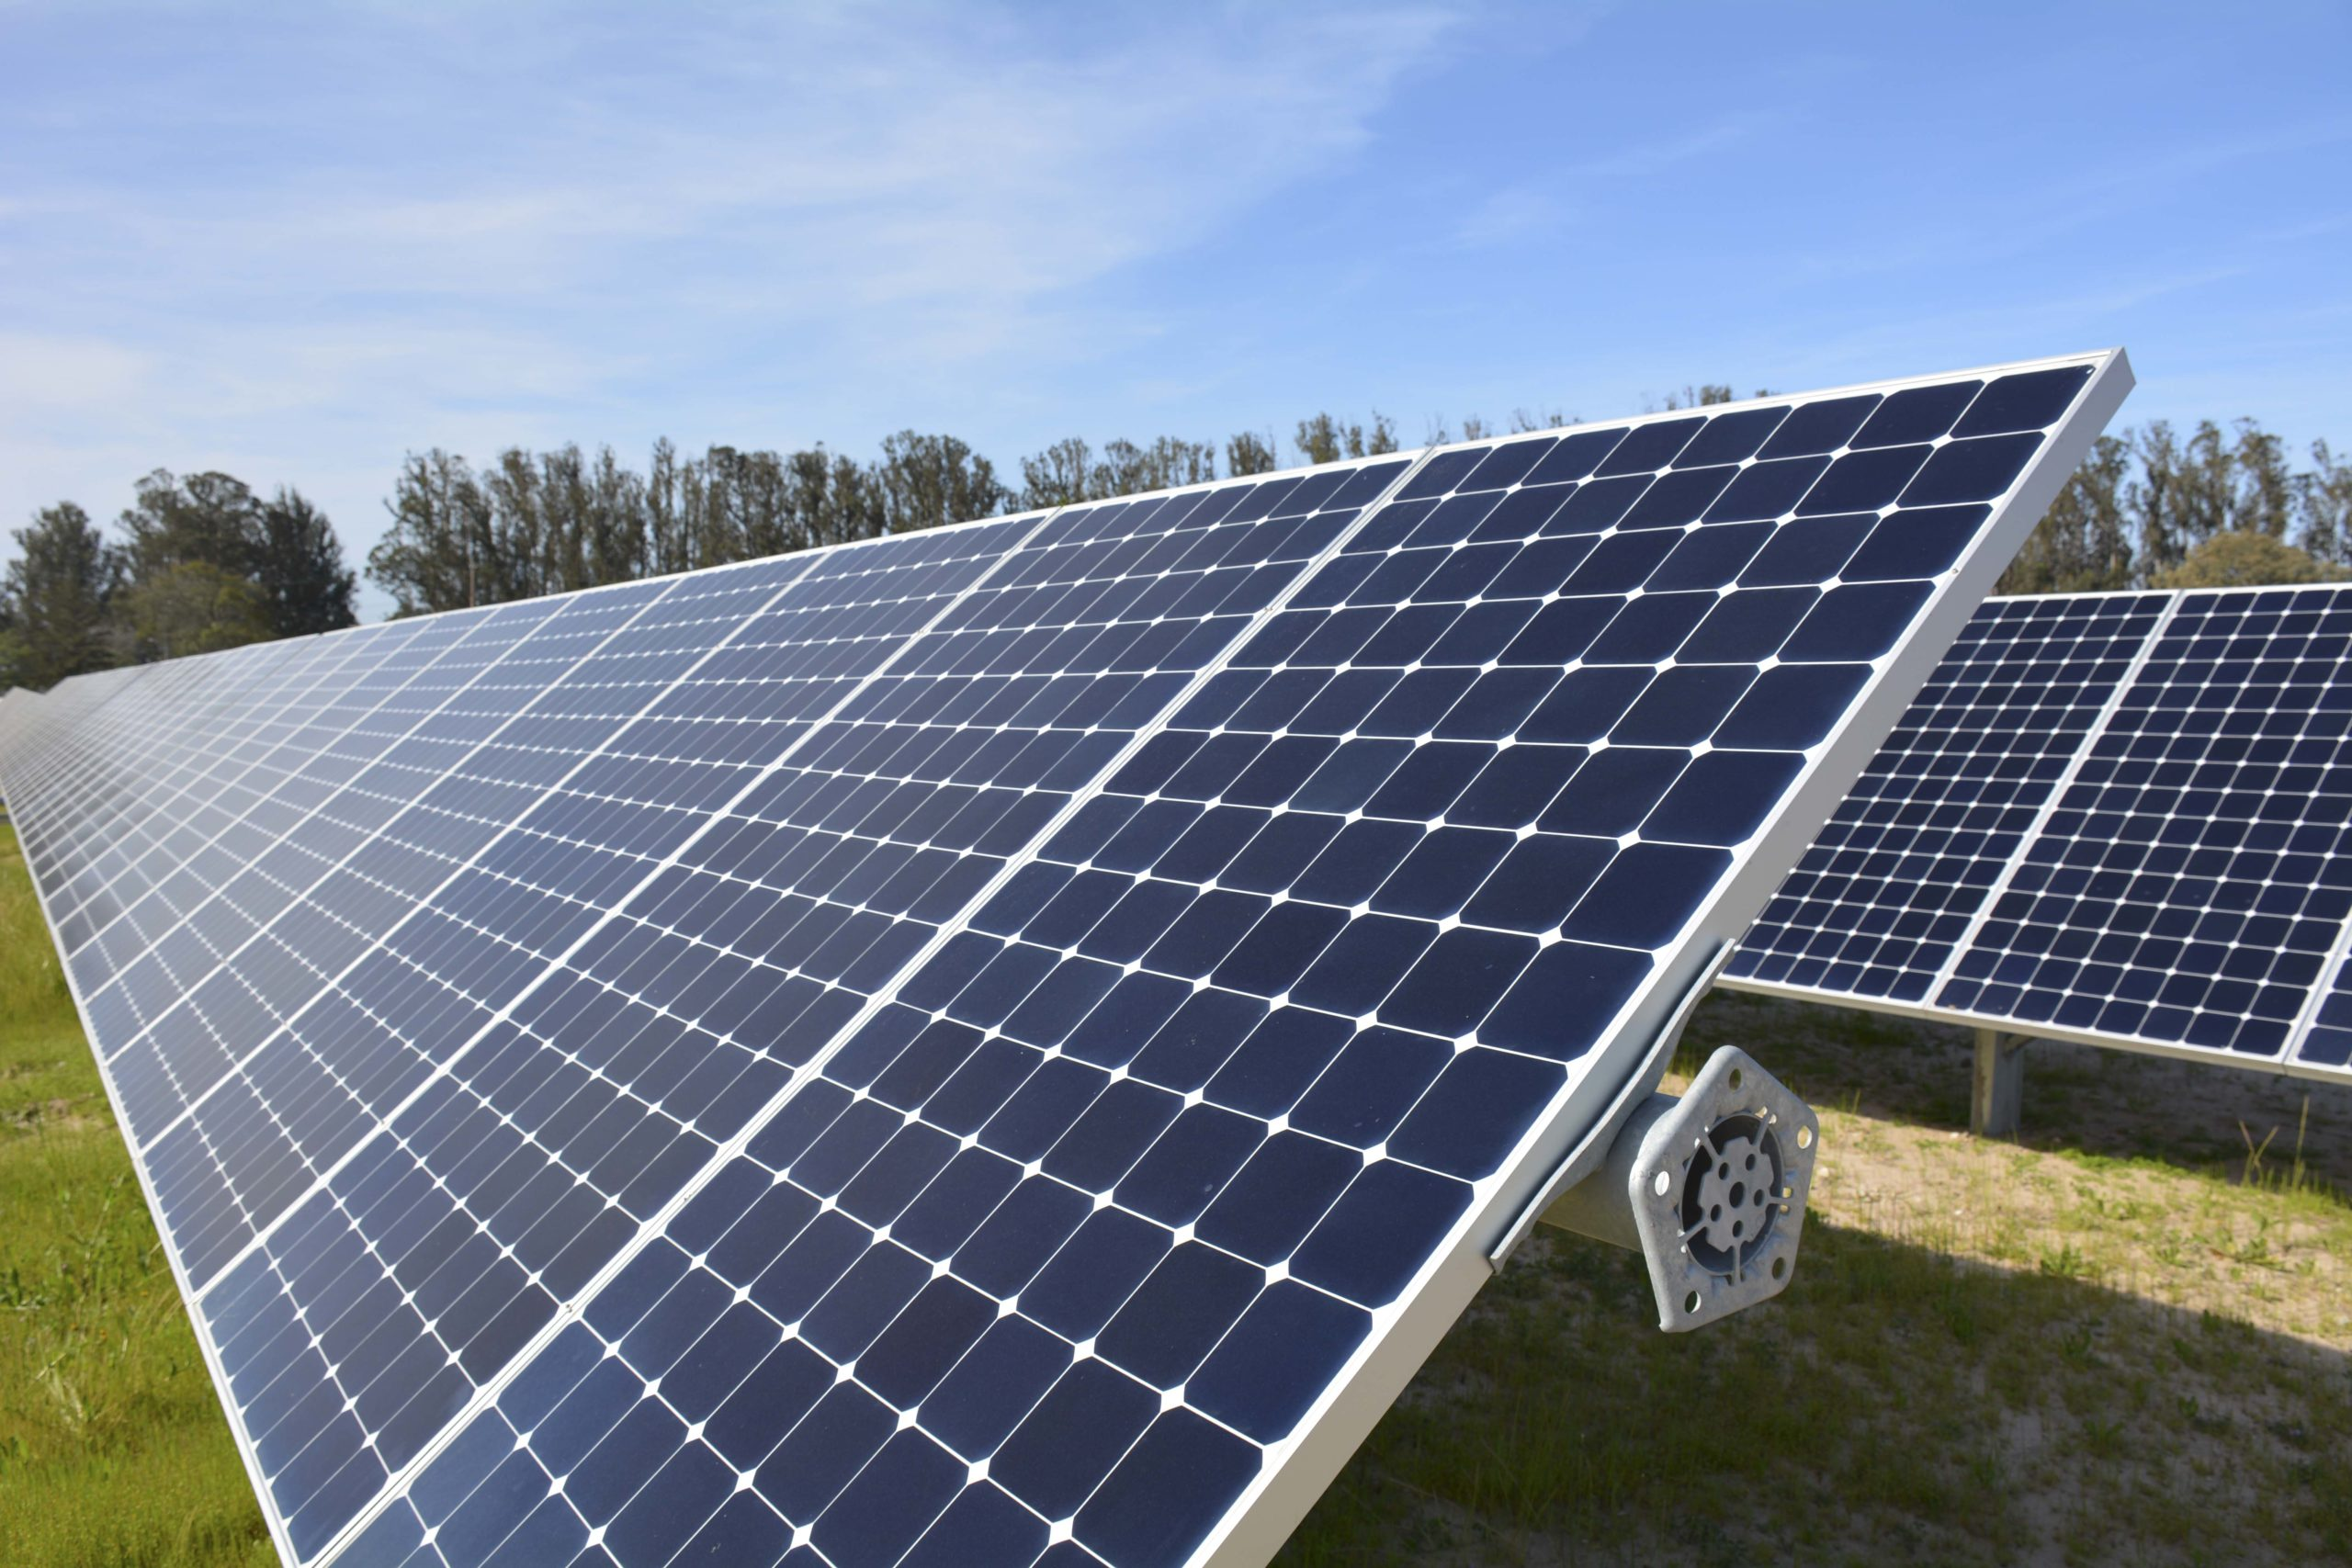 Array of solar panels with blue sky background.